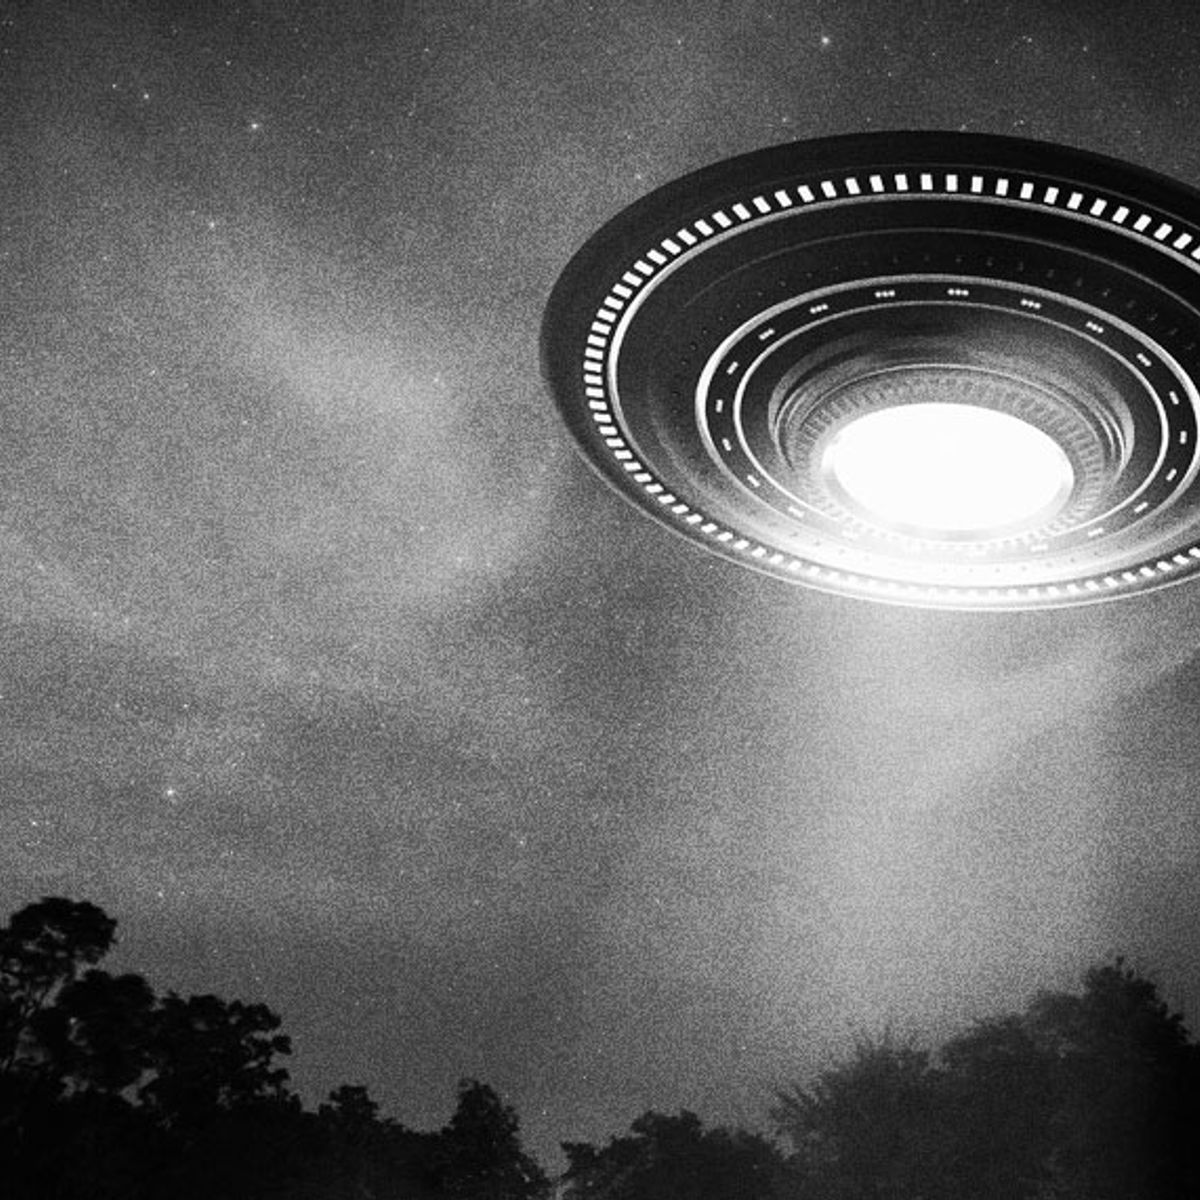 Are conspiracy theories on the rise in the U.S.?